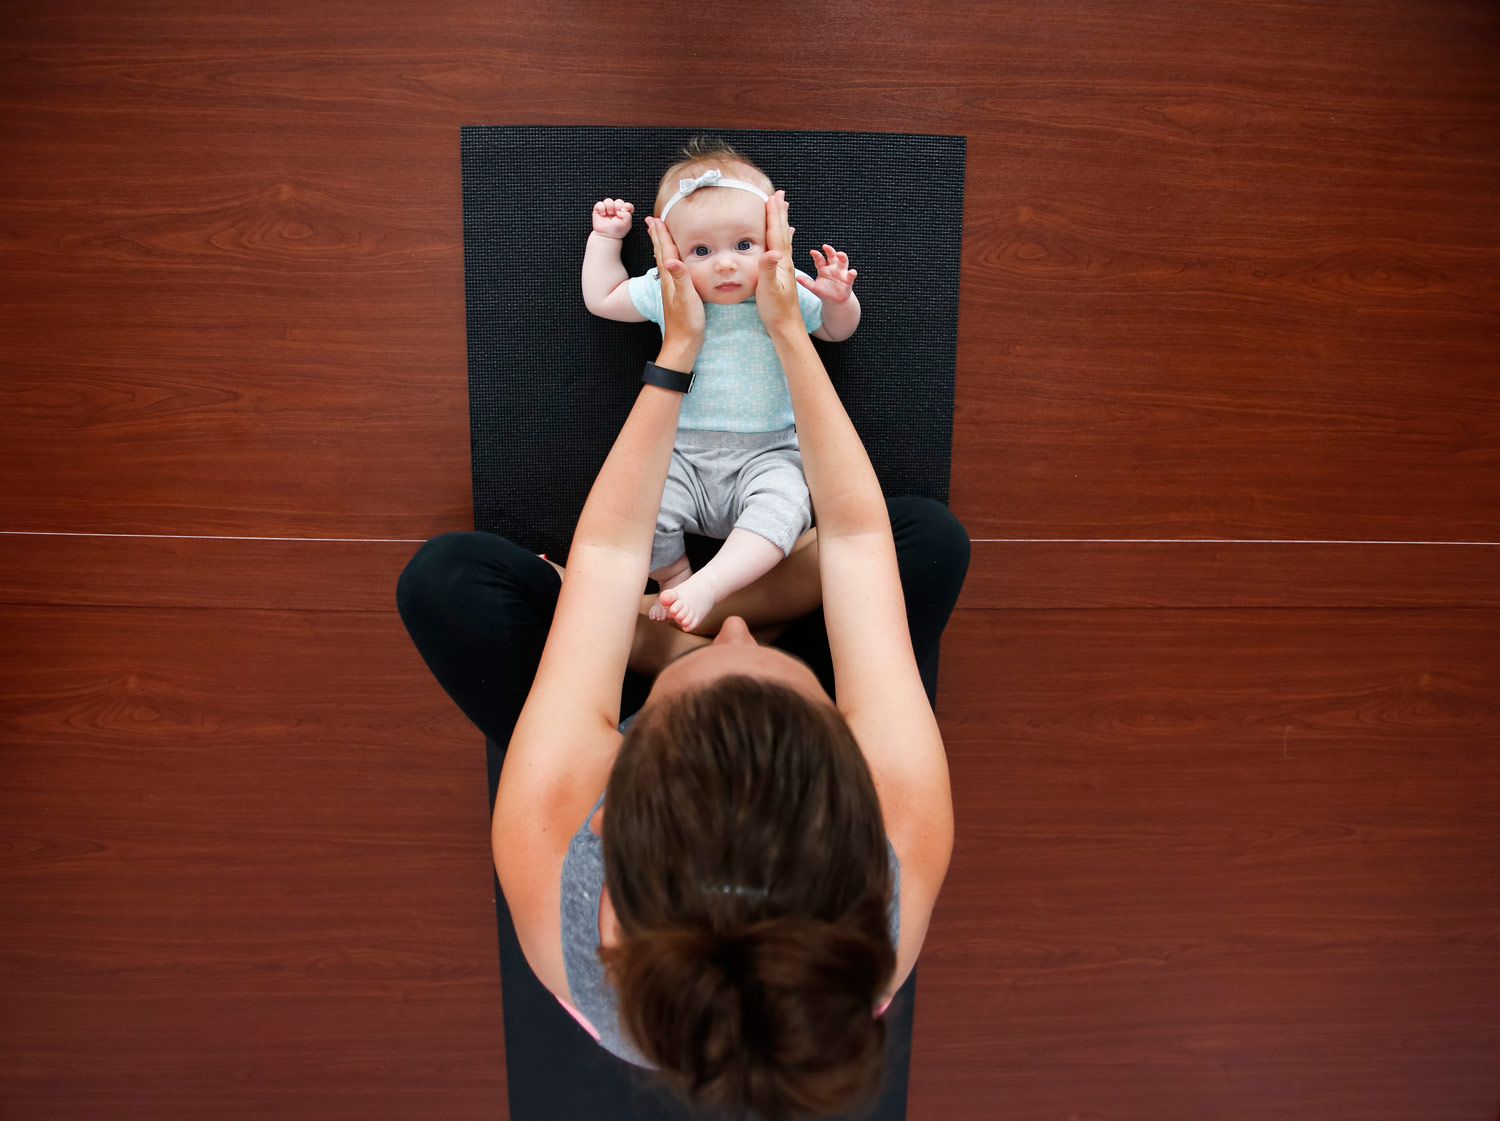 ohmmother-yoga-marketing-commercial-promotional-ruthie-hauge-photography-madison-wi-28.jpg